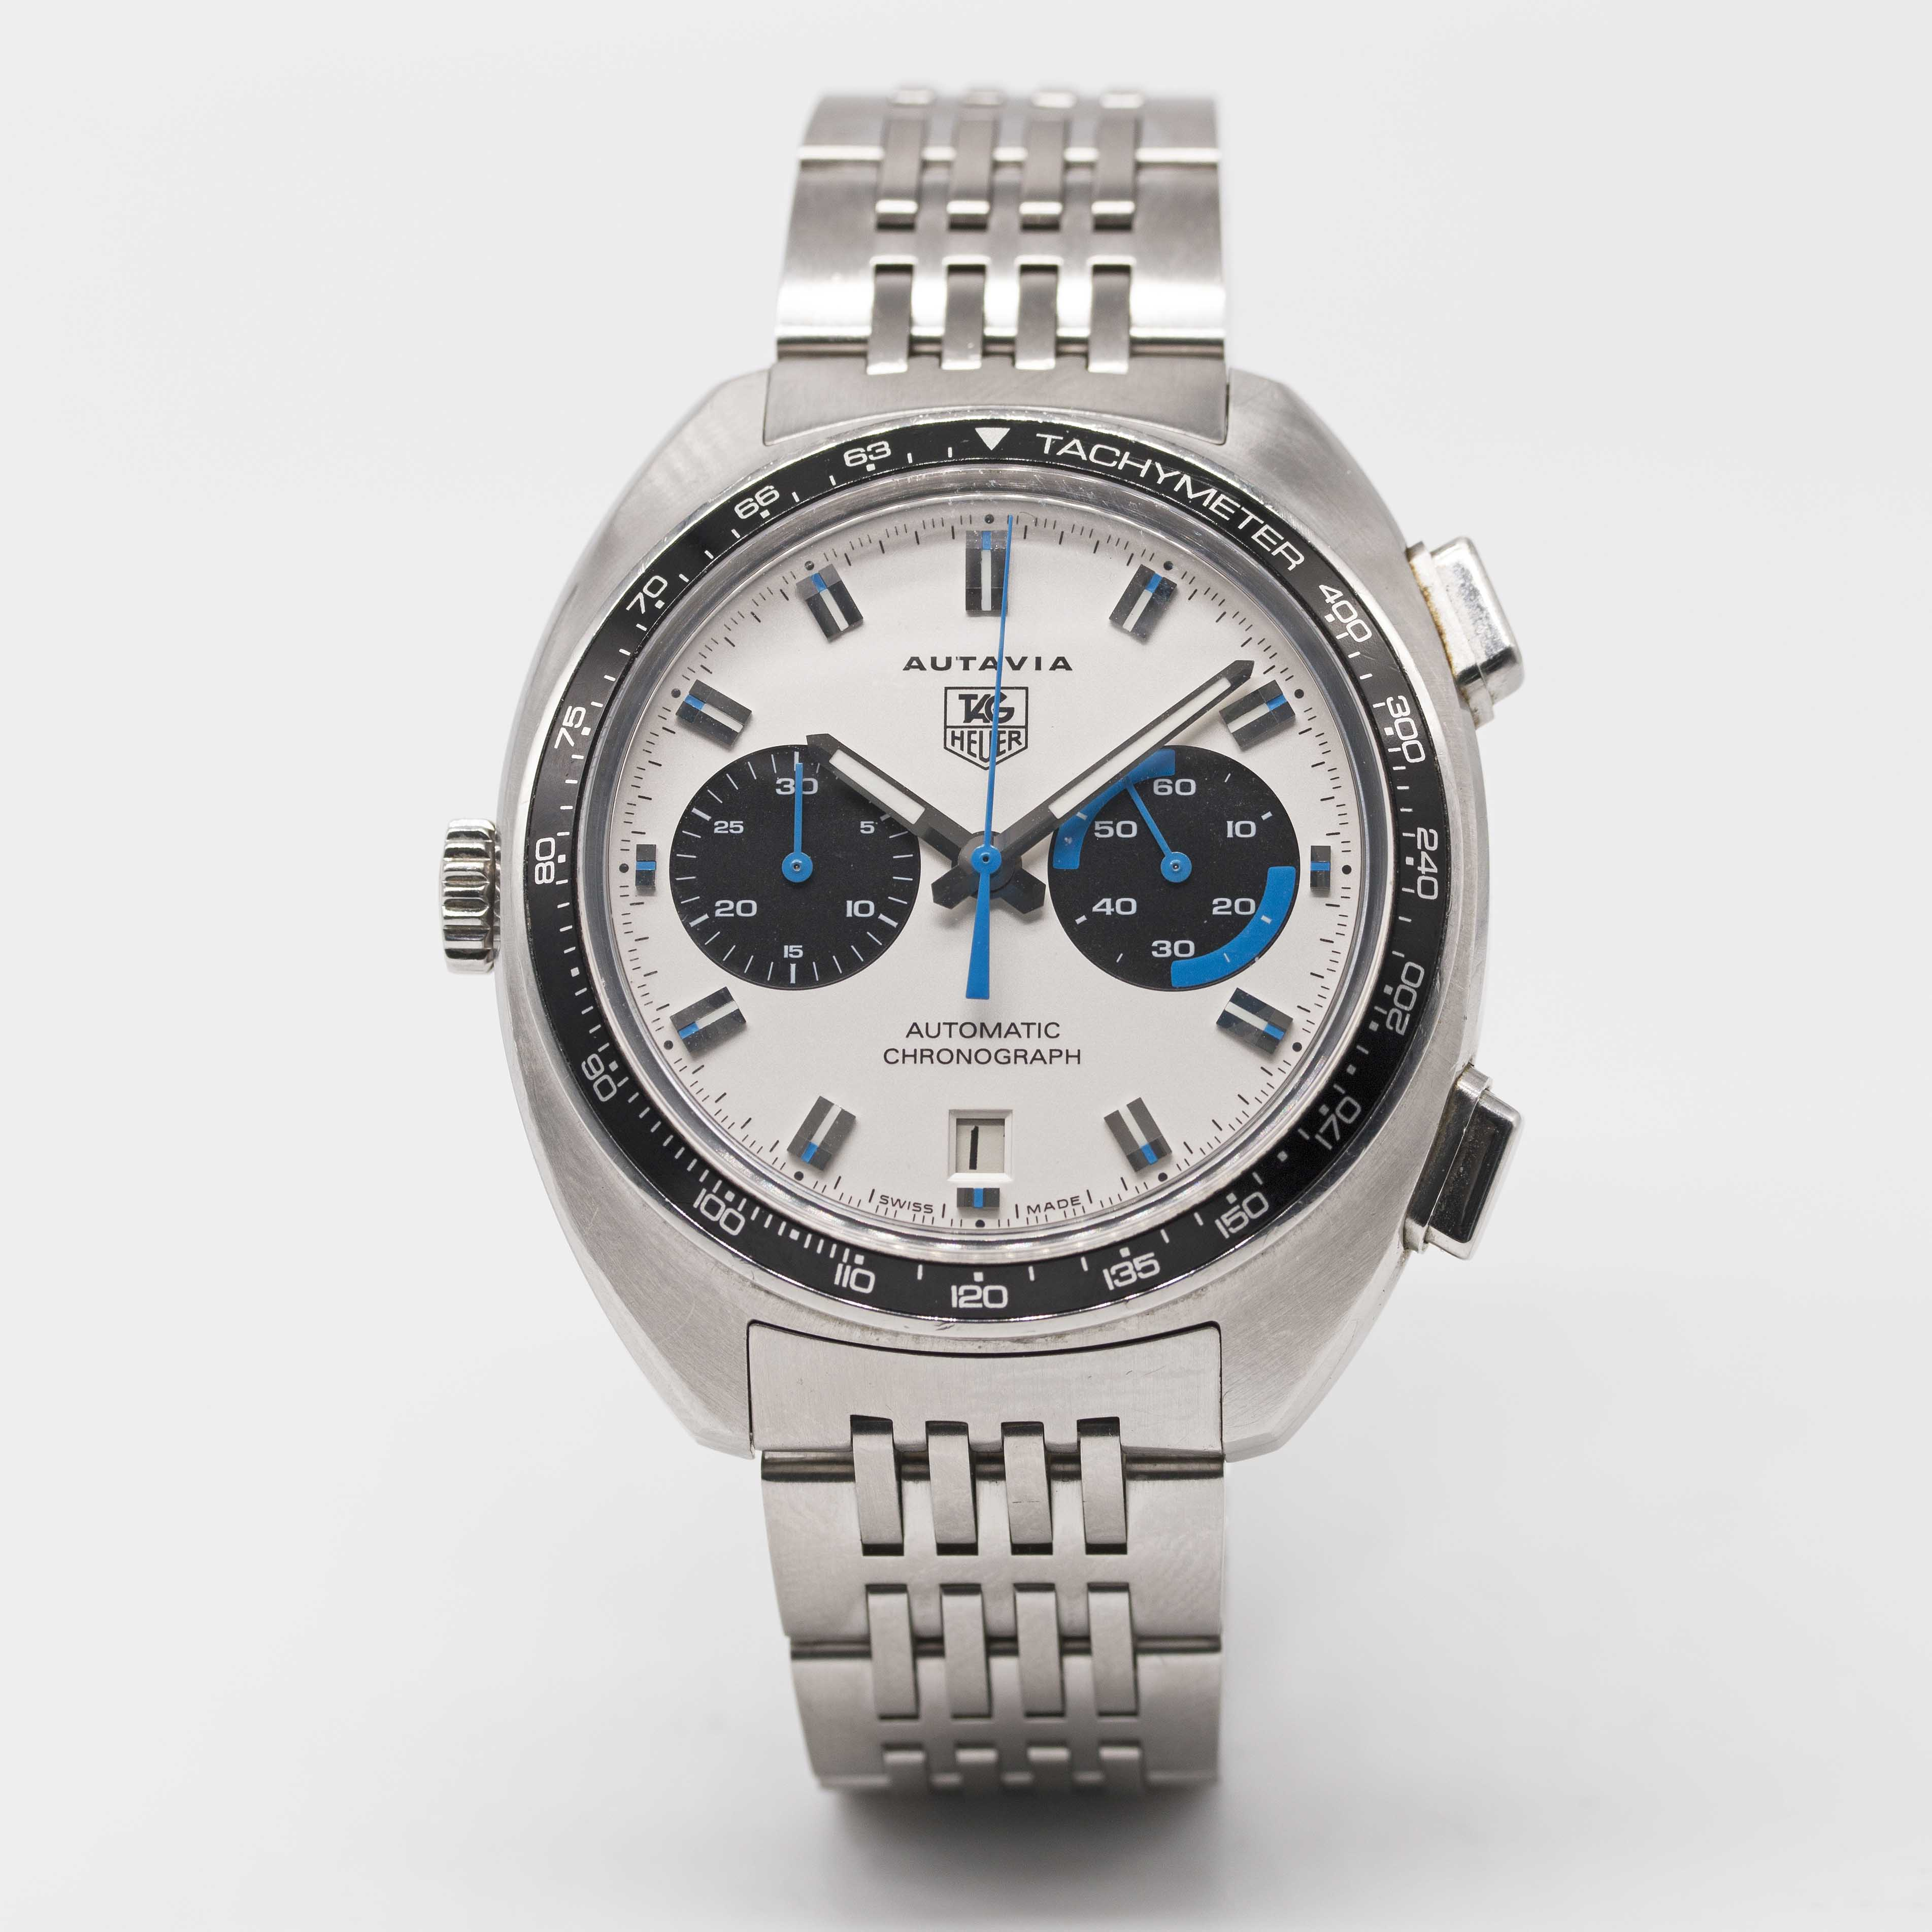 Lot 34 - A GENTLEMAN'S STAINLESS STEEL TAG HEUER AUTAVIA AUTOMATIC CHRONOGRAPH BRACELET WATCH DATED 2003,